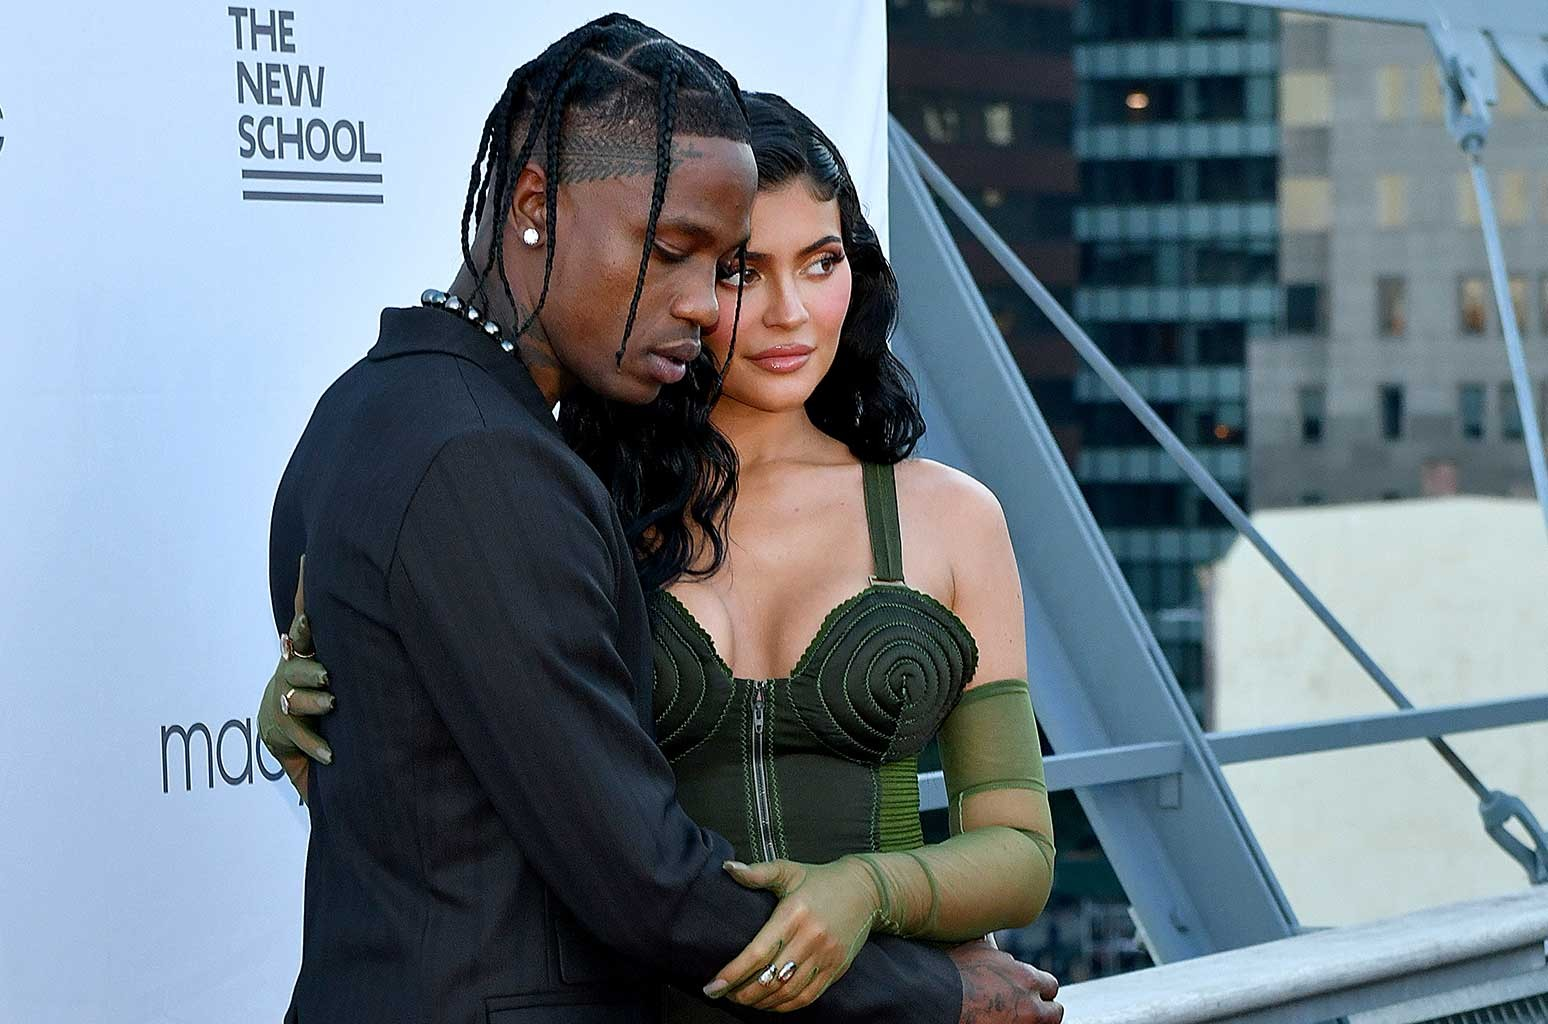 KUWTK: Kylie Jenner and Travis Scott are said to have a very complex relationship!